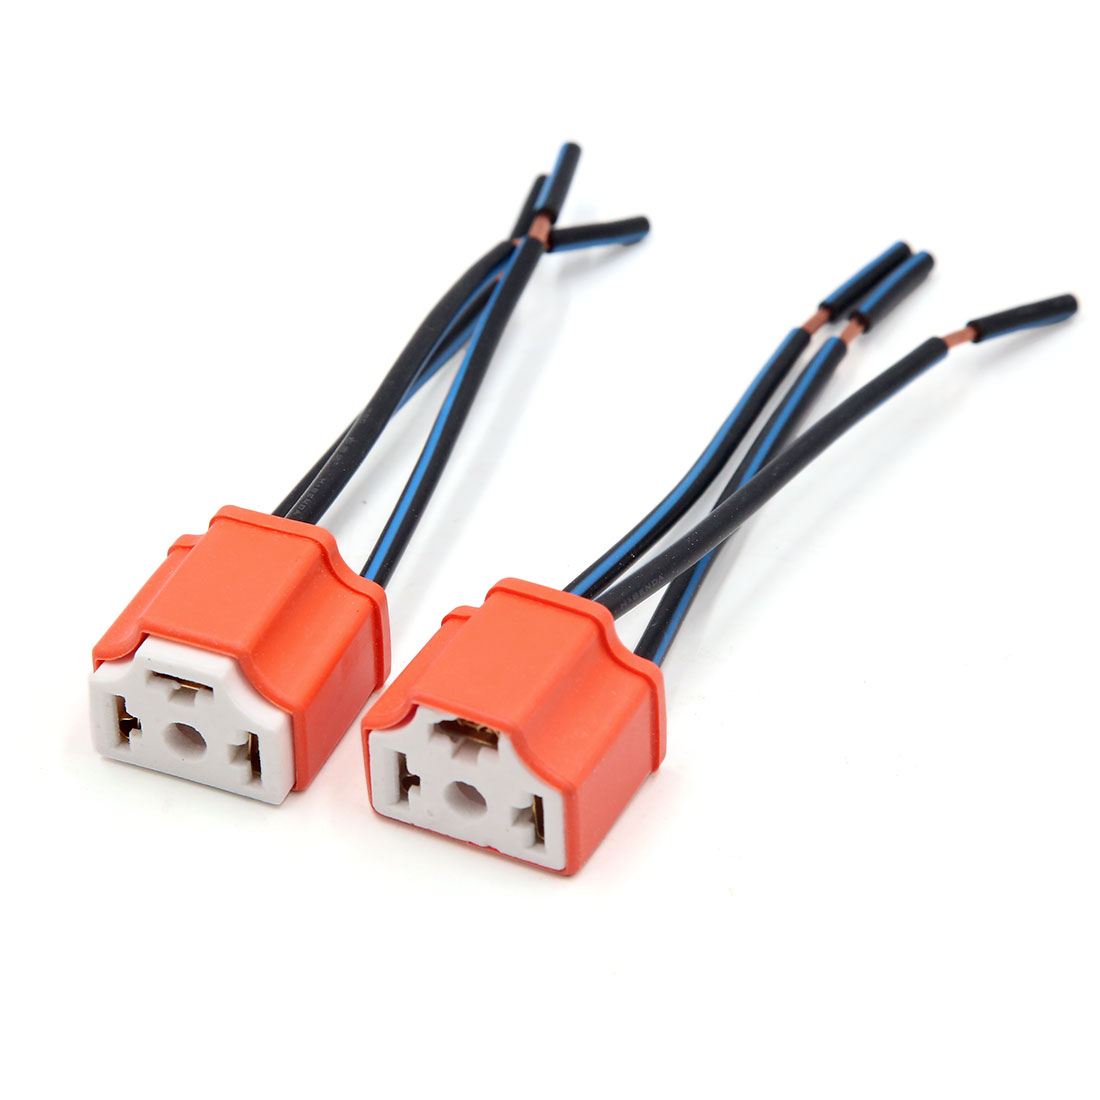 2PCS Orange 3 Terminals H4 Bulb Socket Car Wire Harness Extension Connector